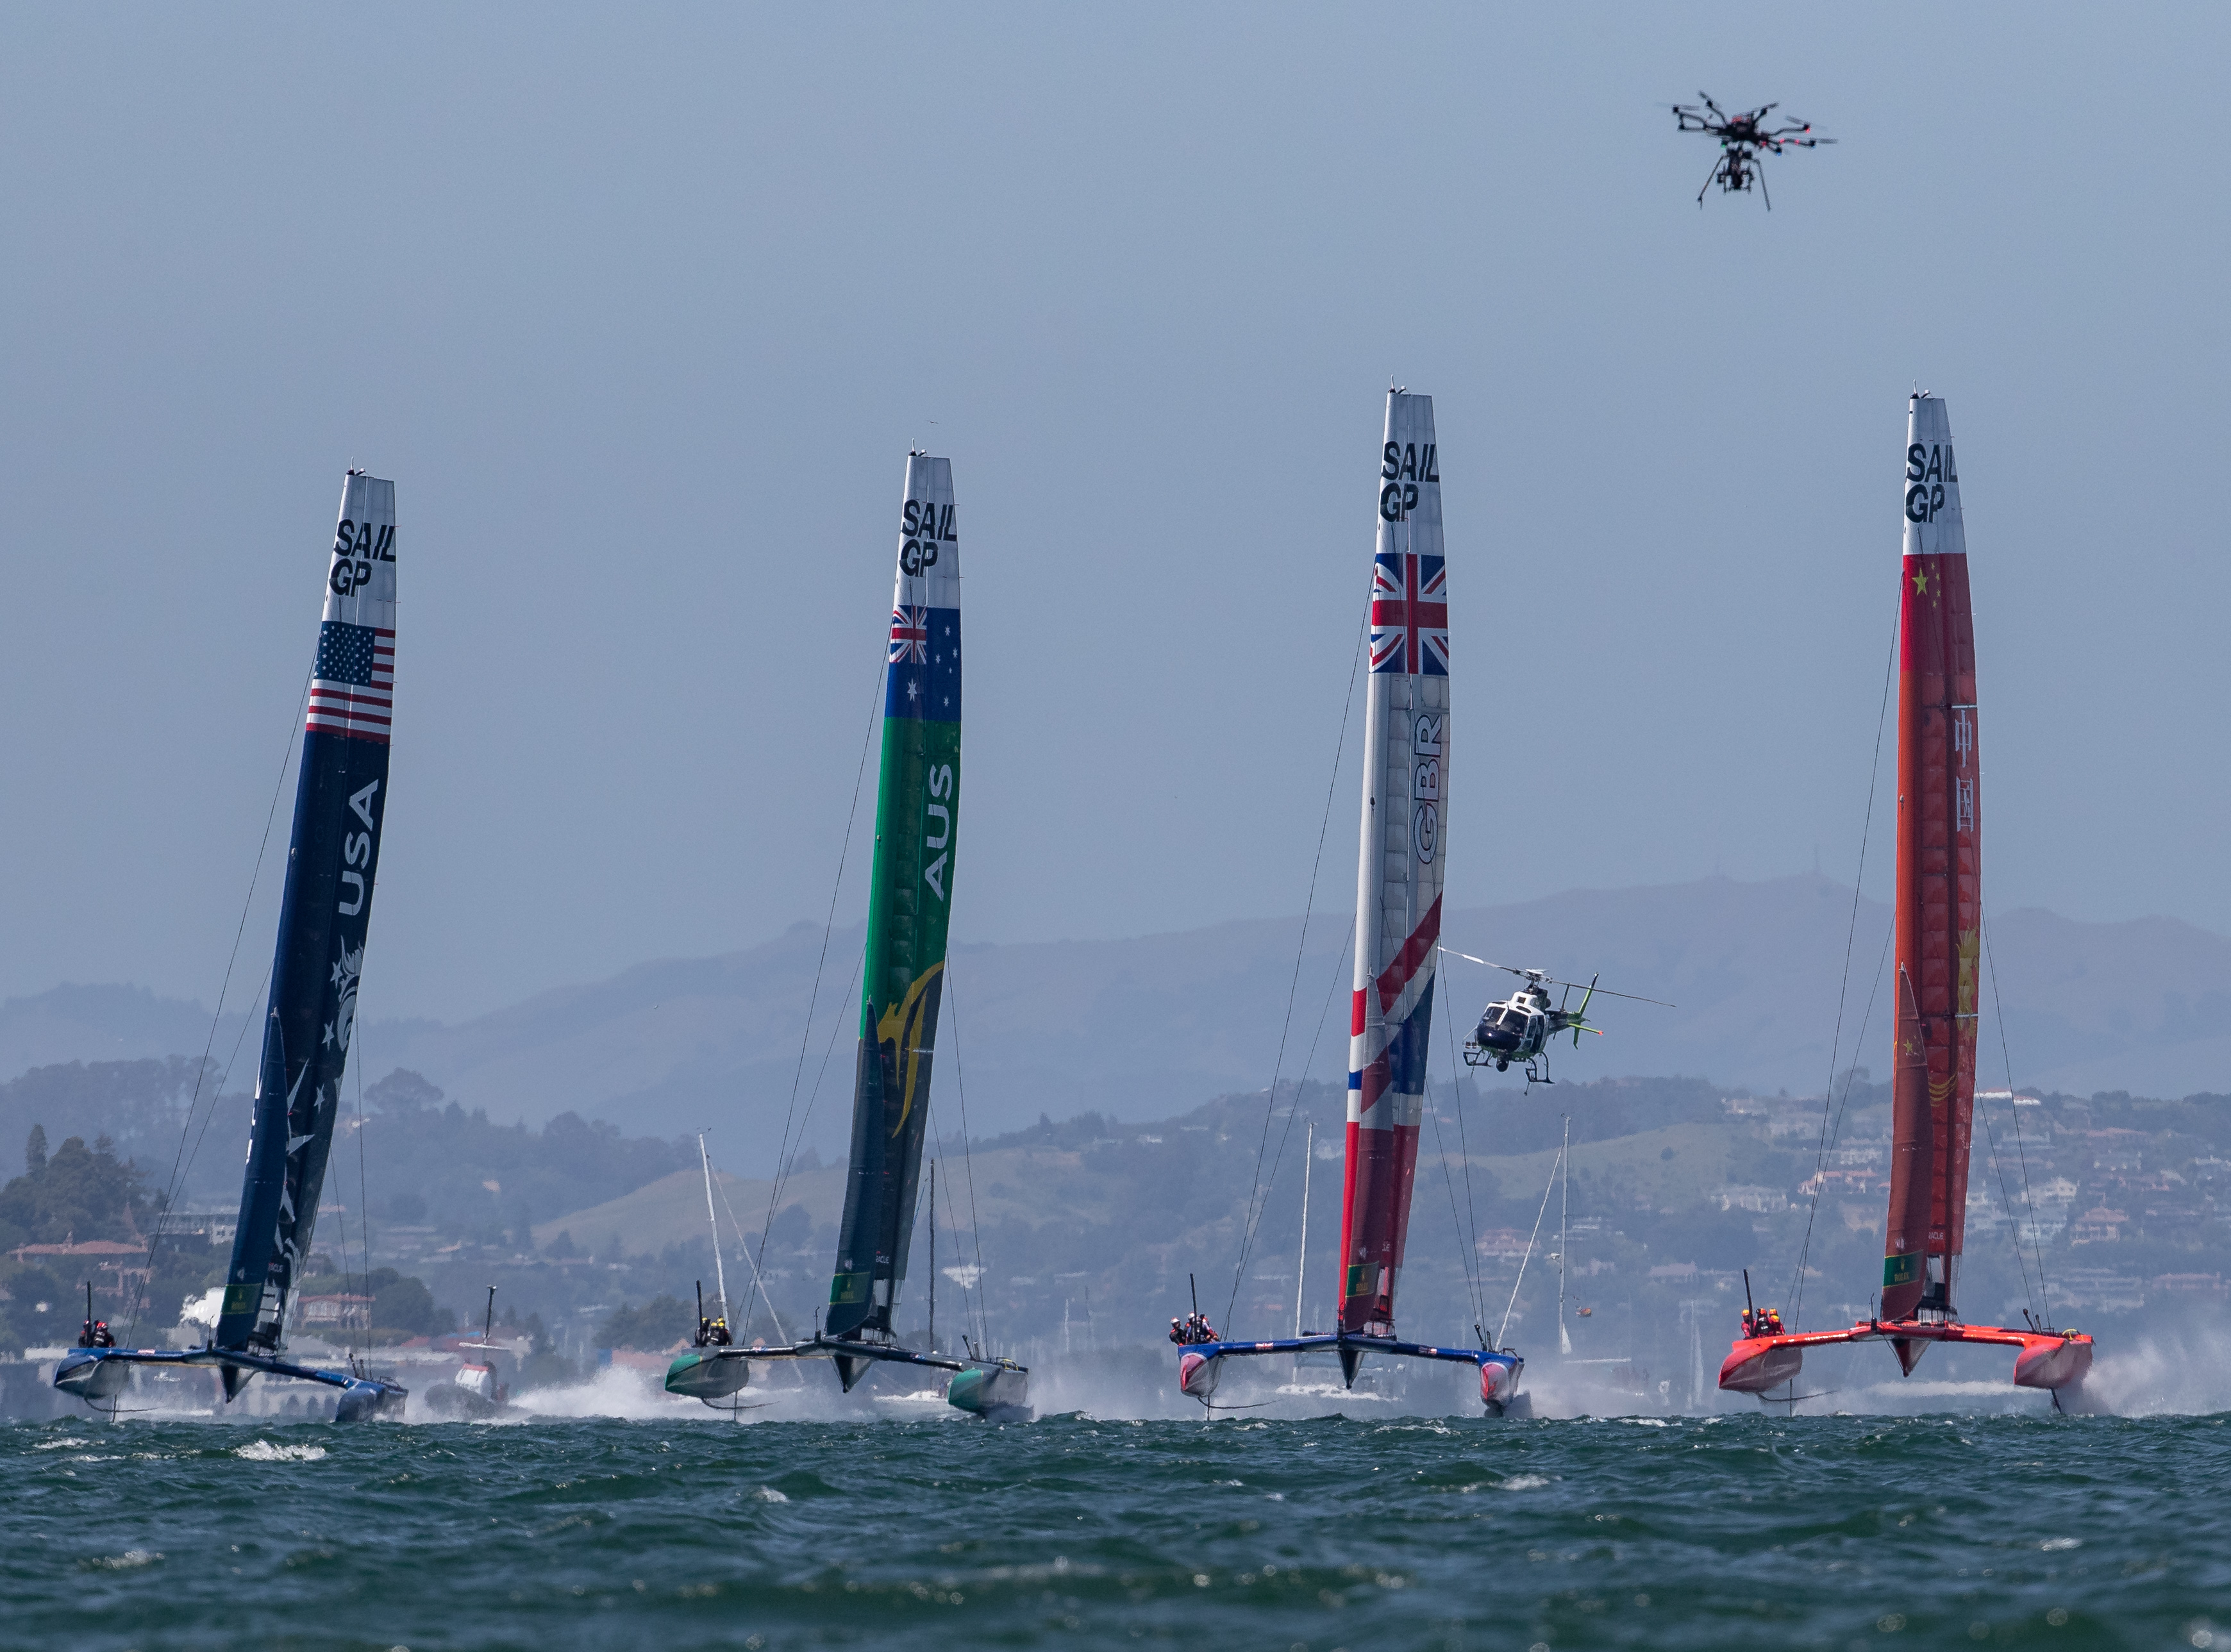 Big action and helicopter and drone add to the picture by Eloi Stichelbaut - San Francisco SailGP